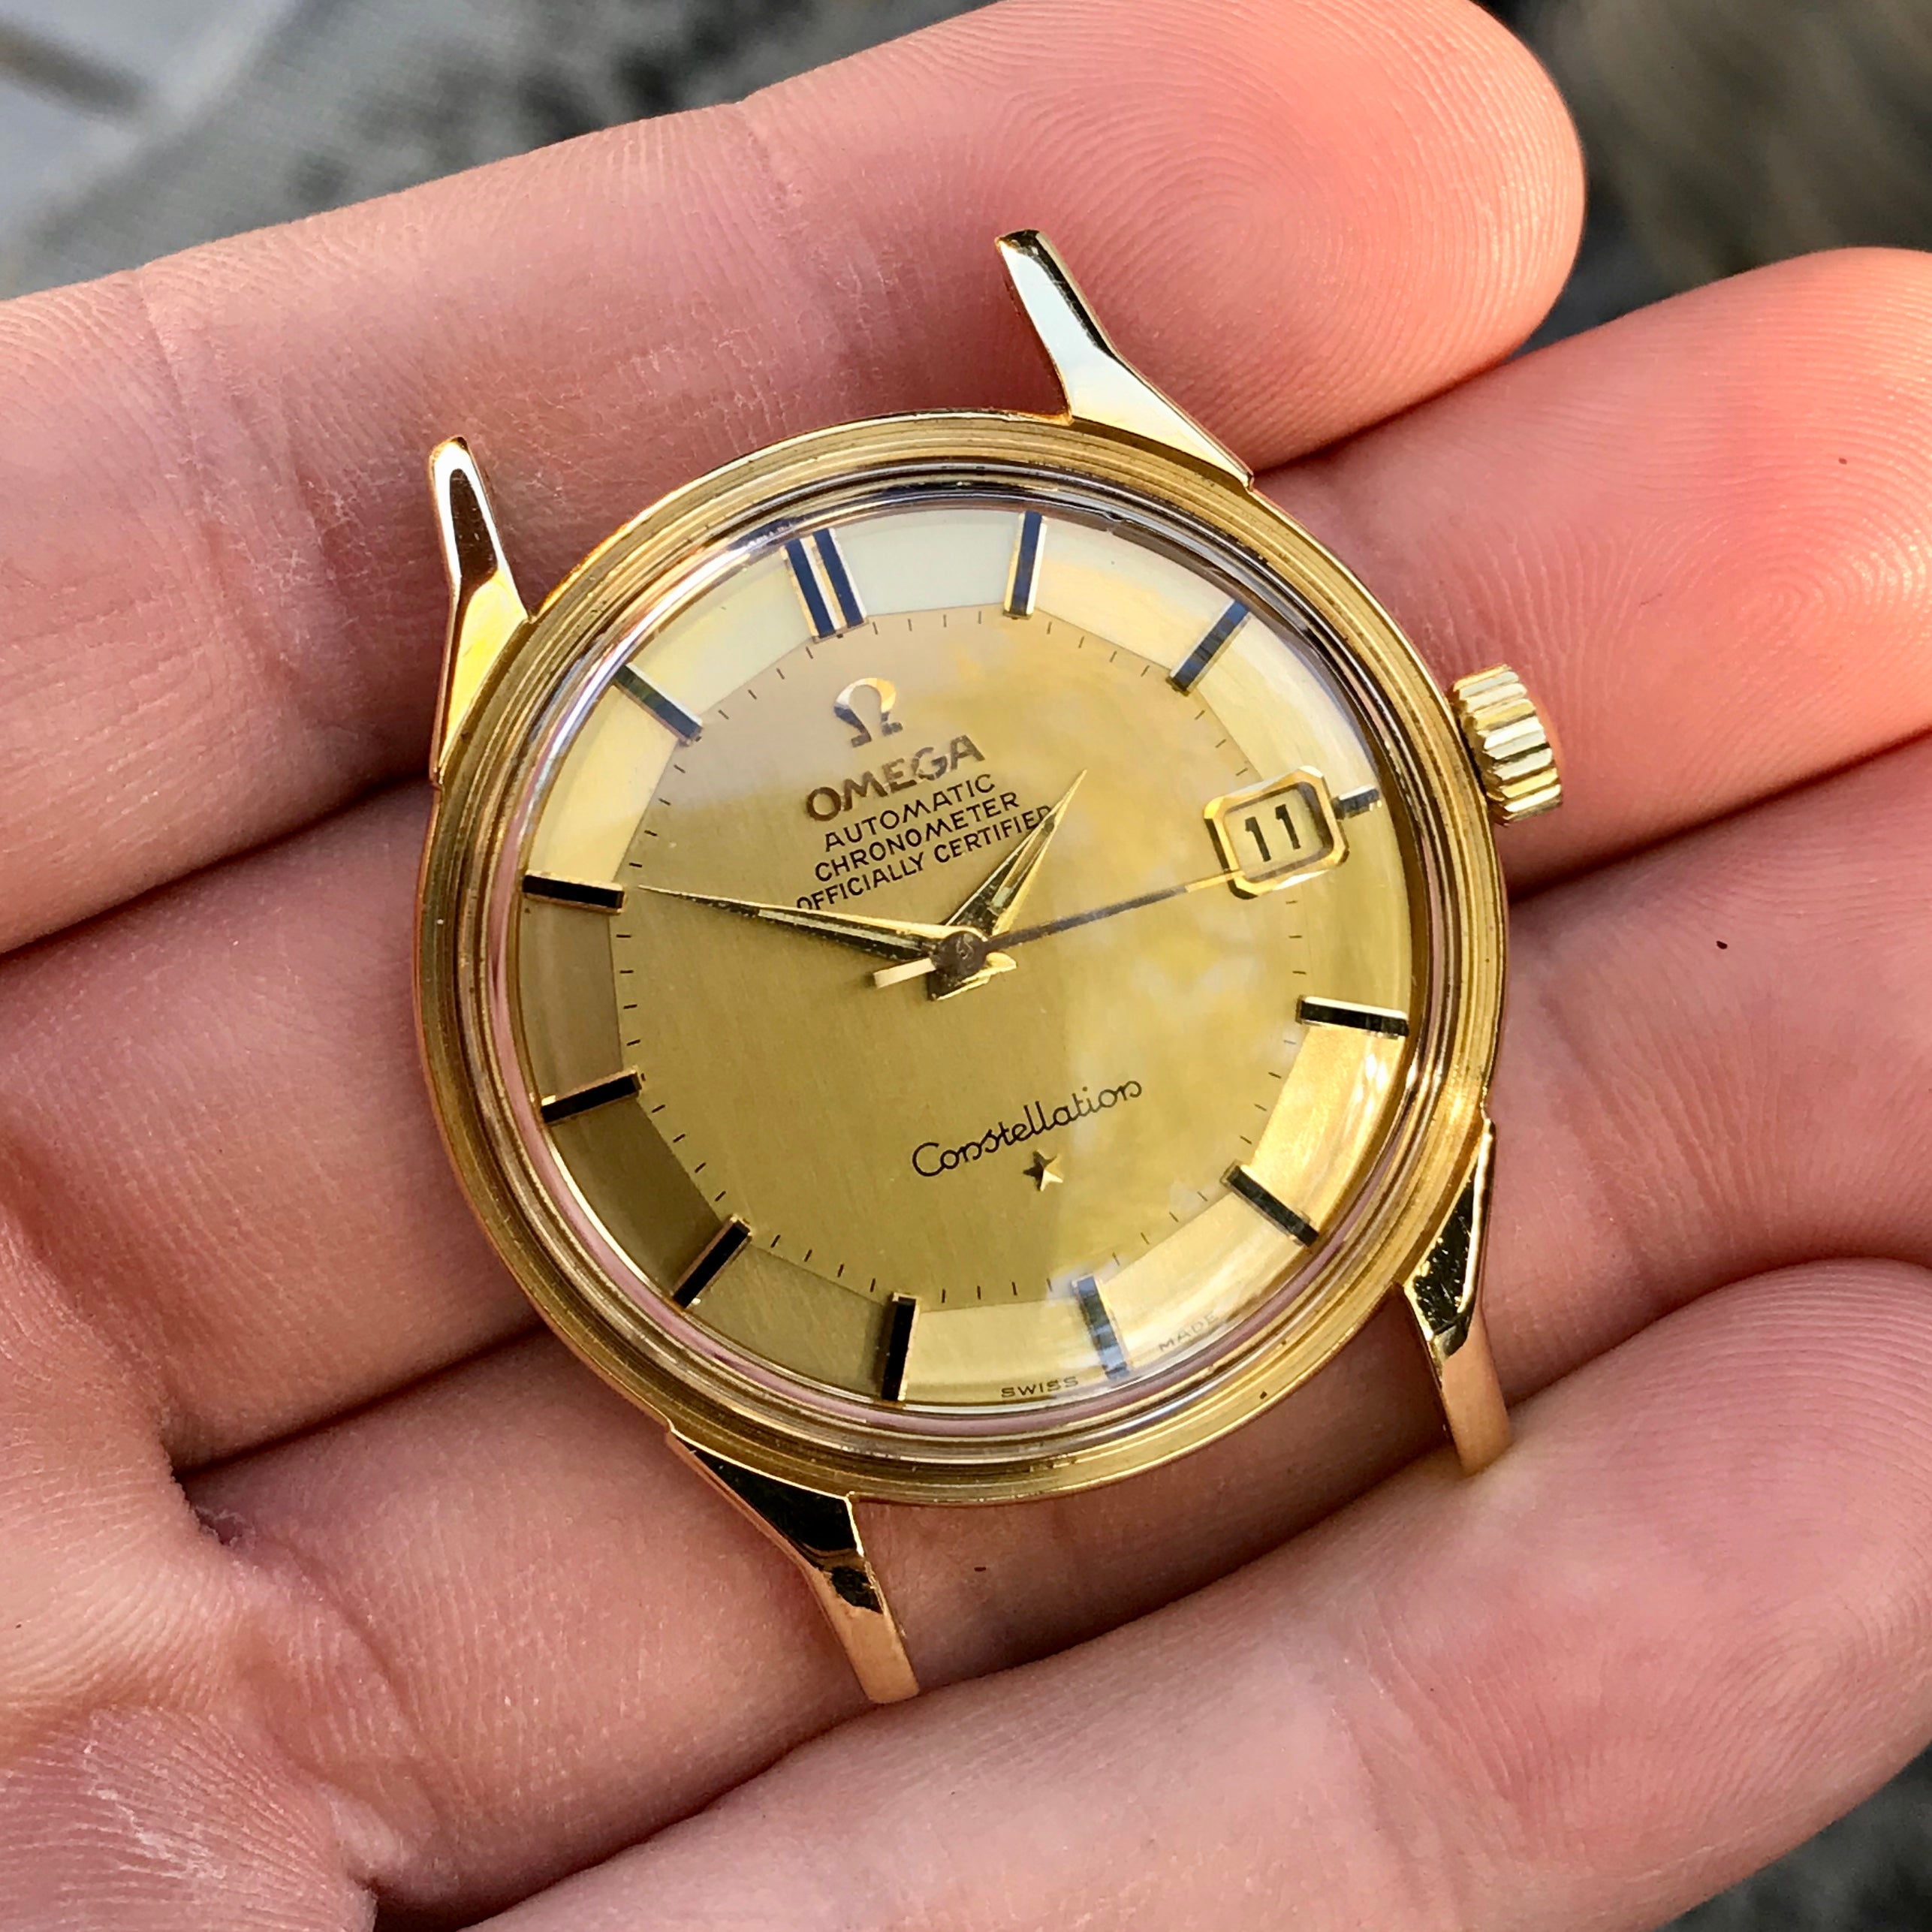 Vintage Omega Constellation Date 168.005 18K Yellow Gold Caliber 561 Automatic Wristwatch - Hashtag Watch Company